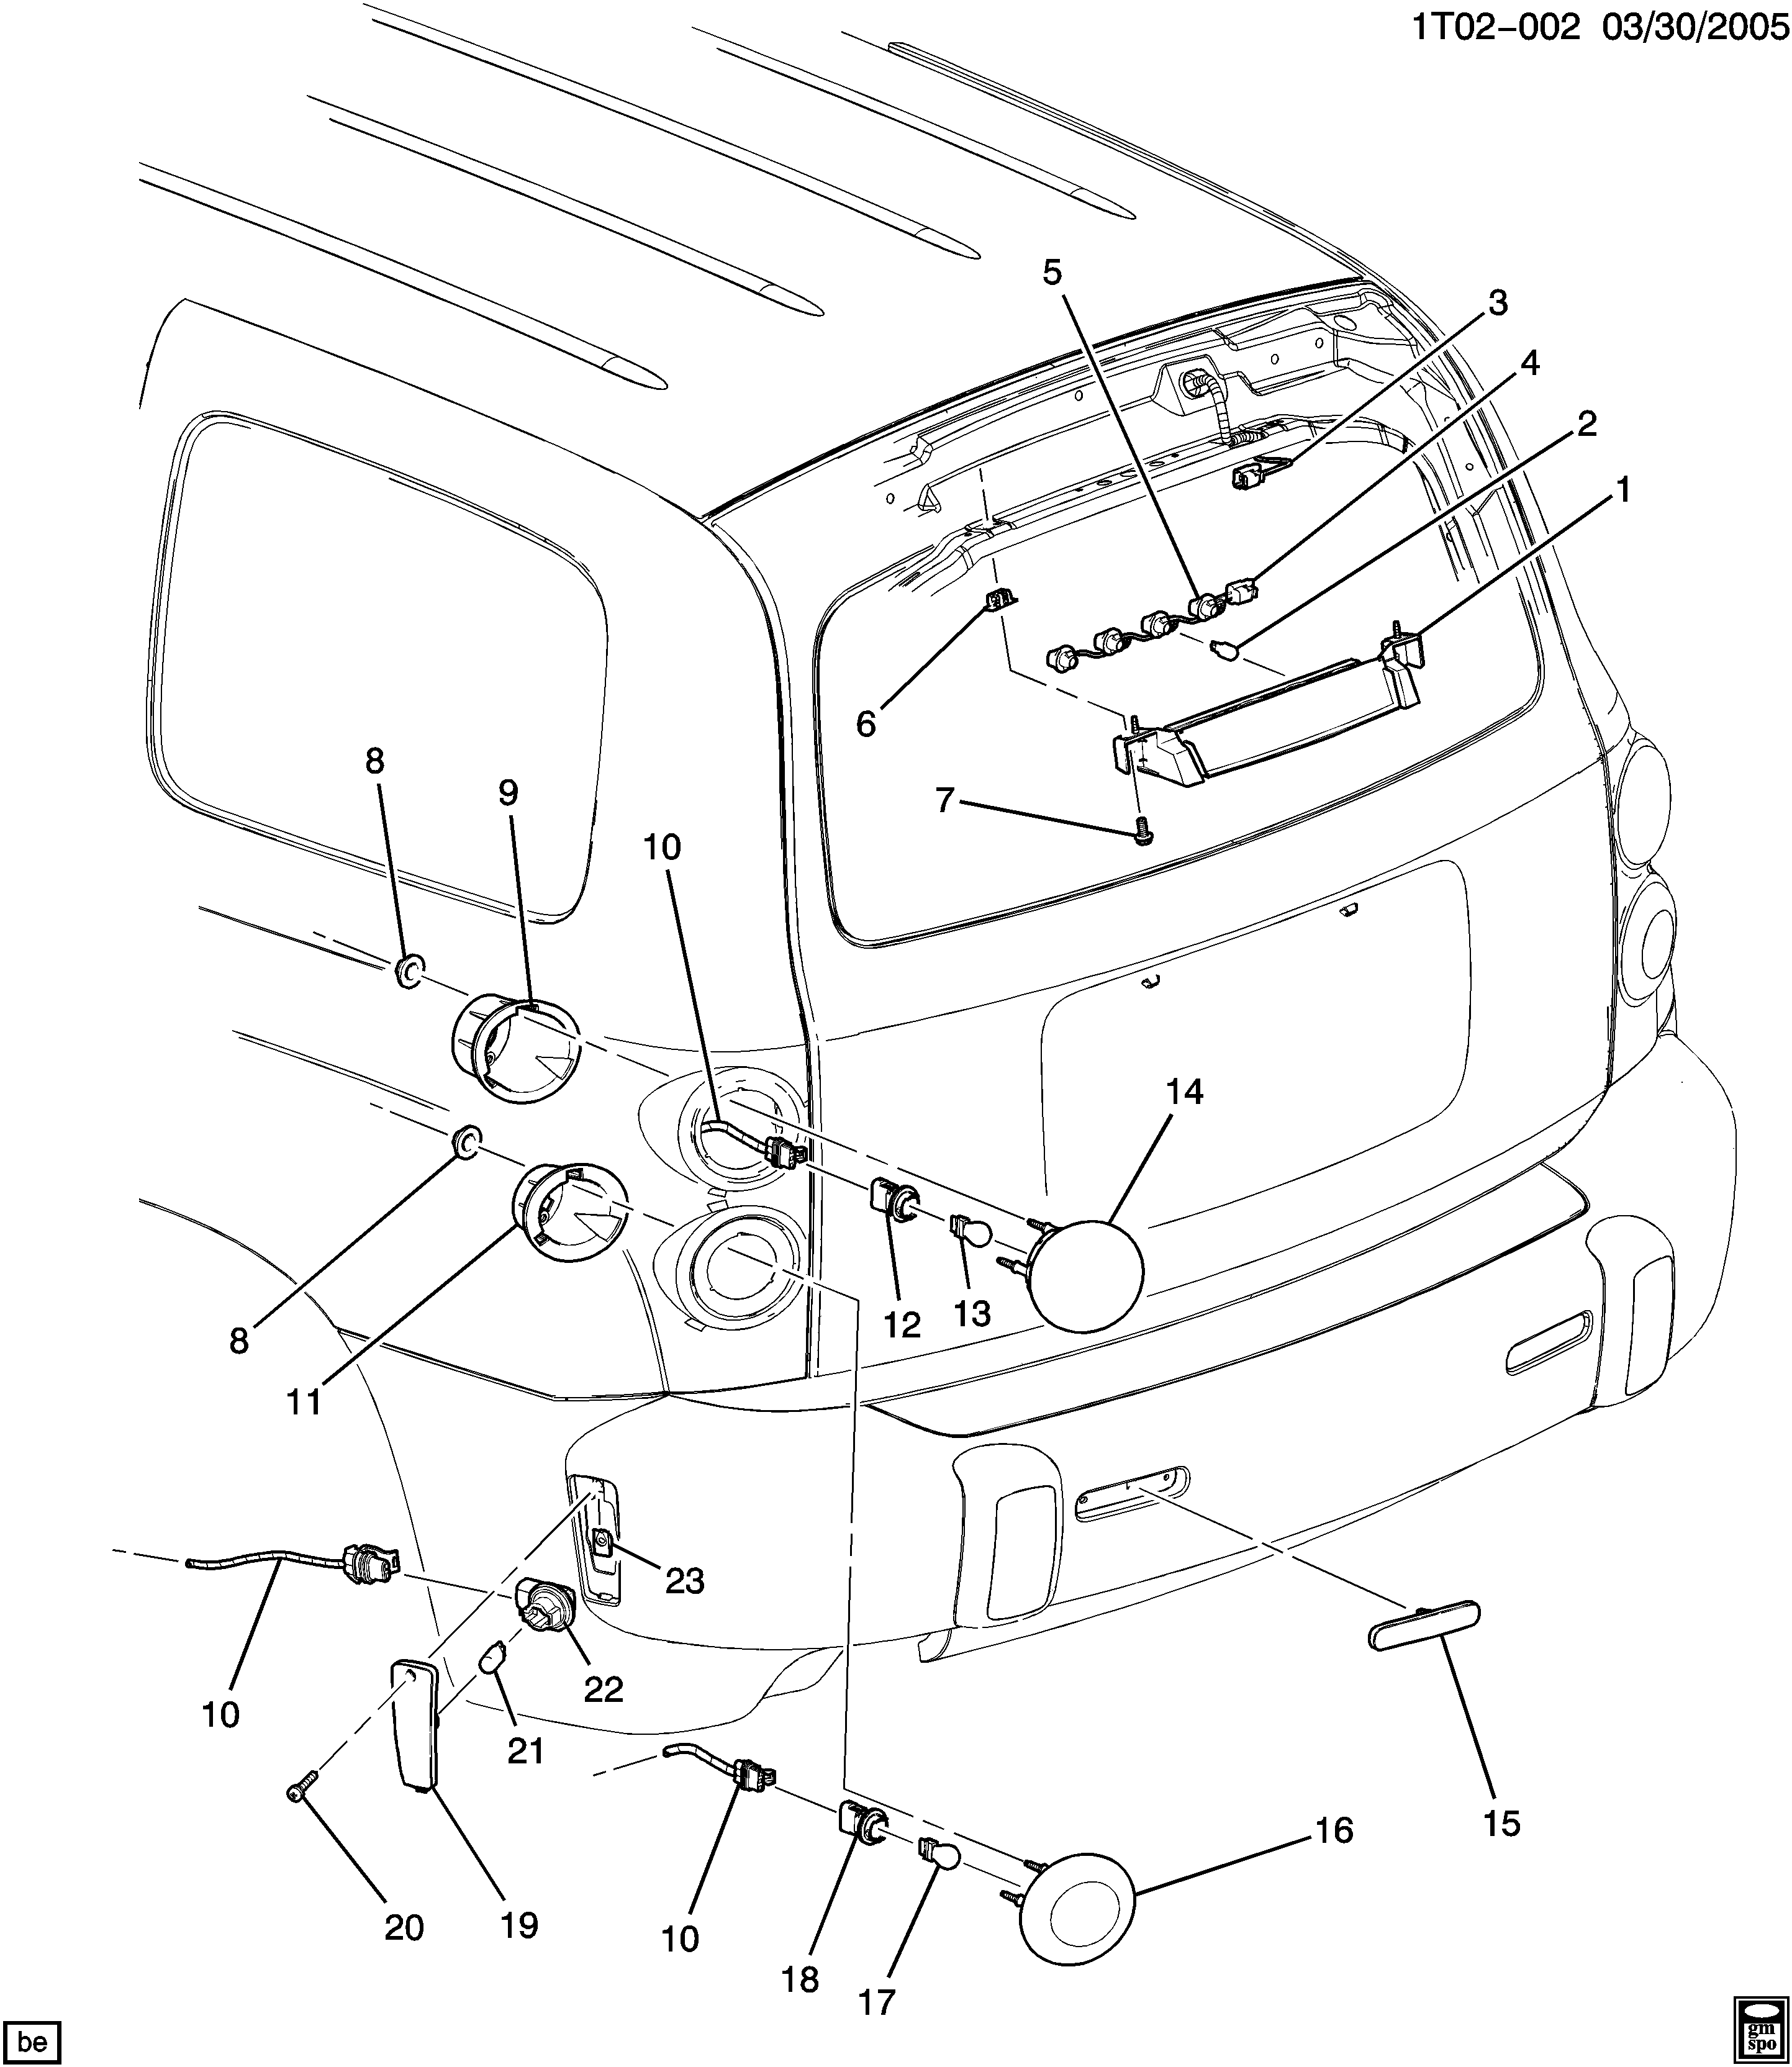 2006 2011 A Lamps Rear Chevrolet Hhr Chevy Tail Light Wiring Diagram